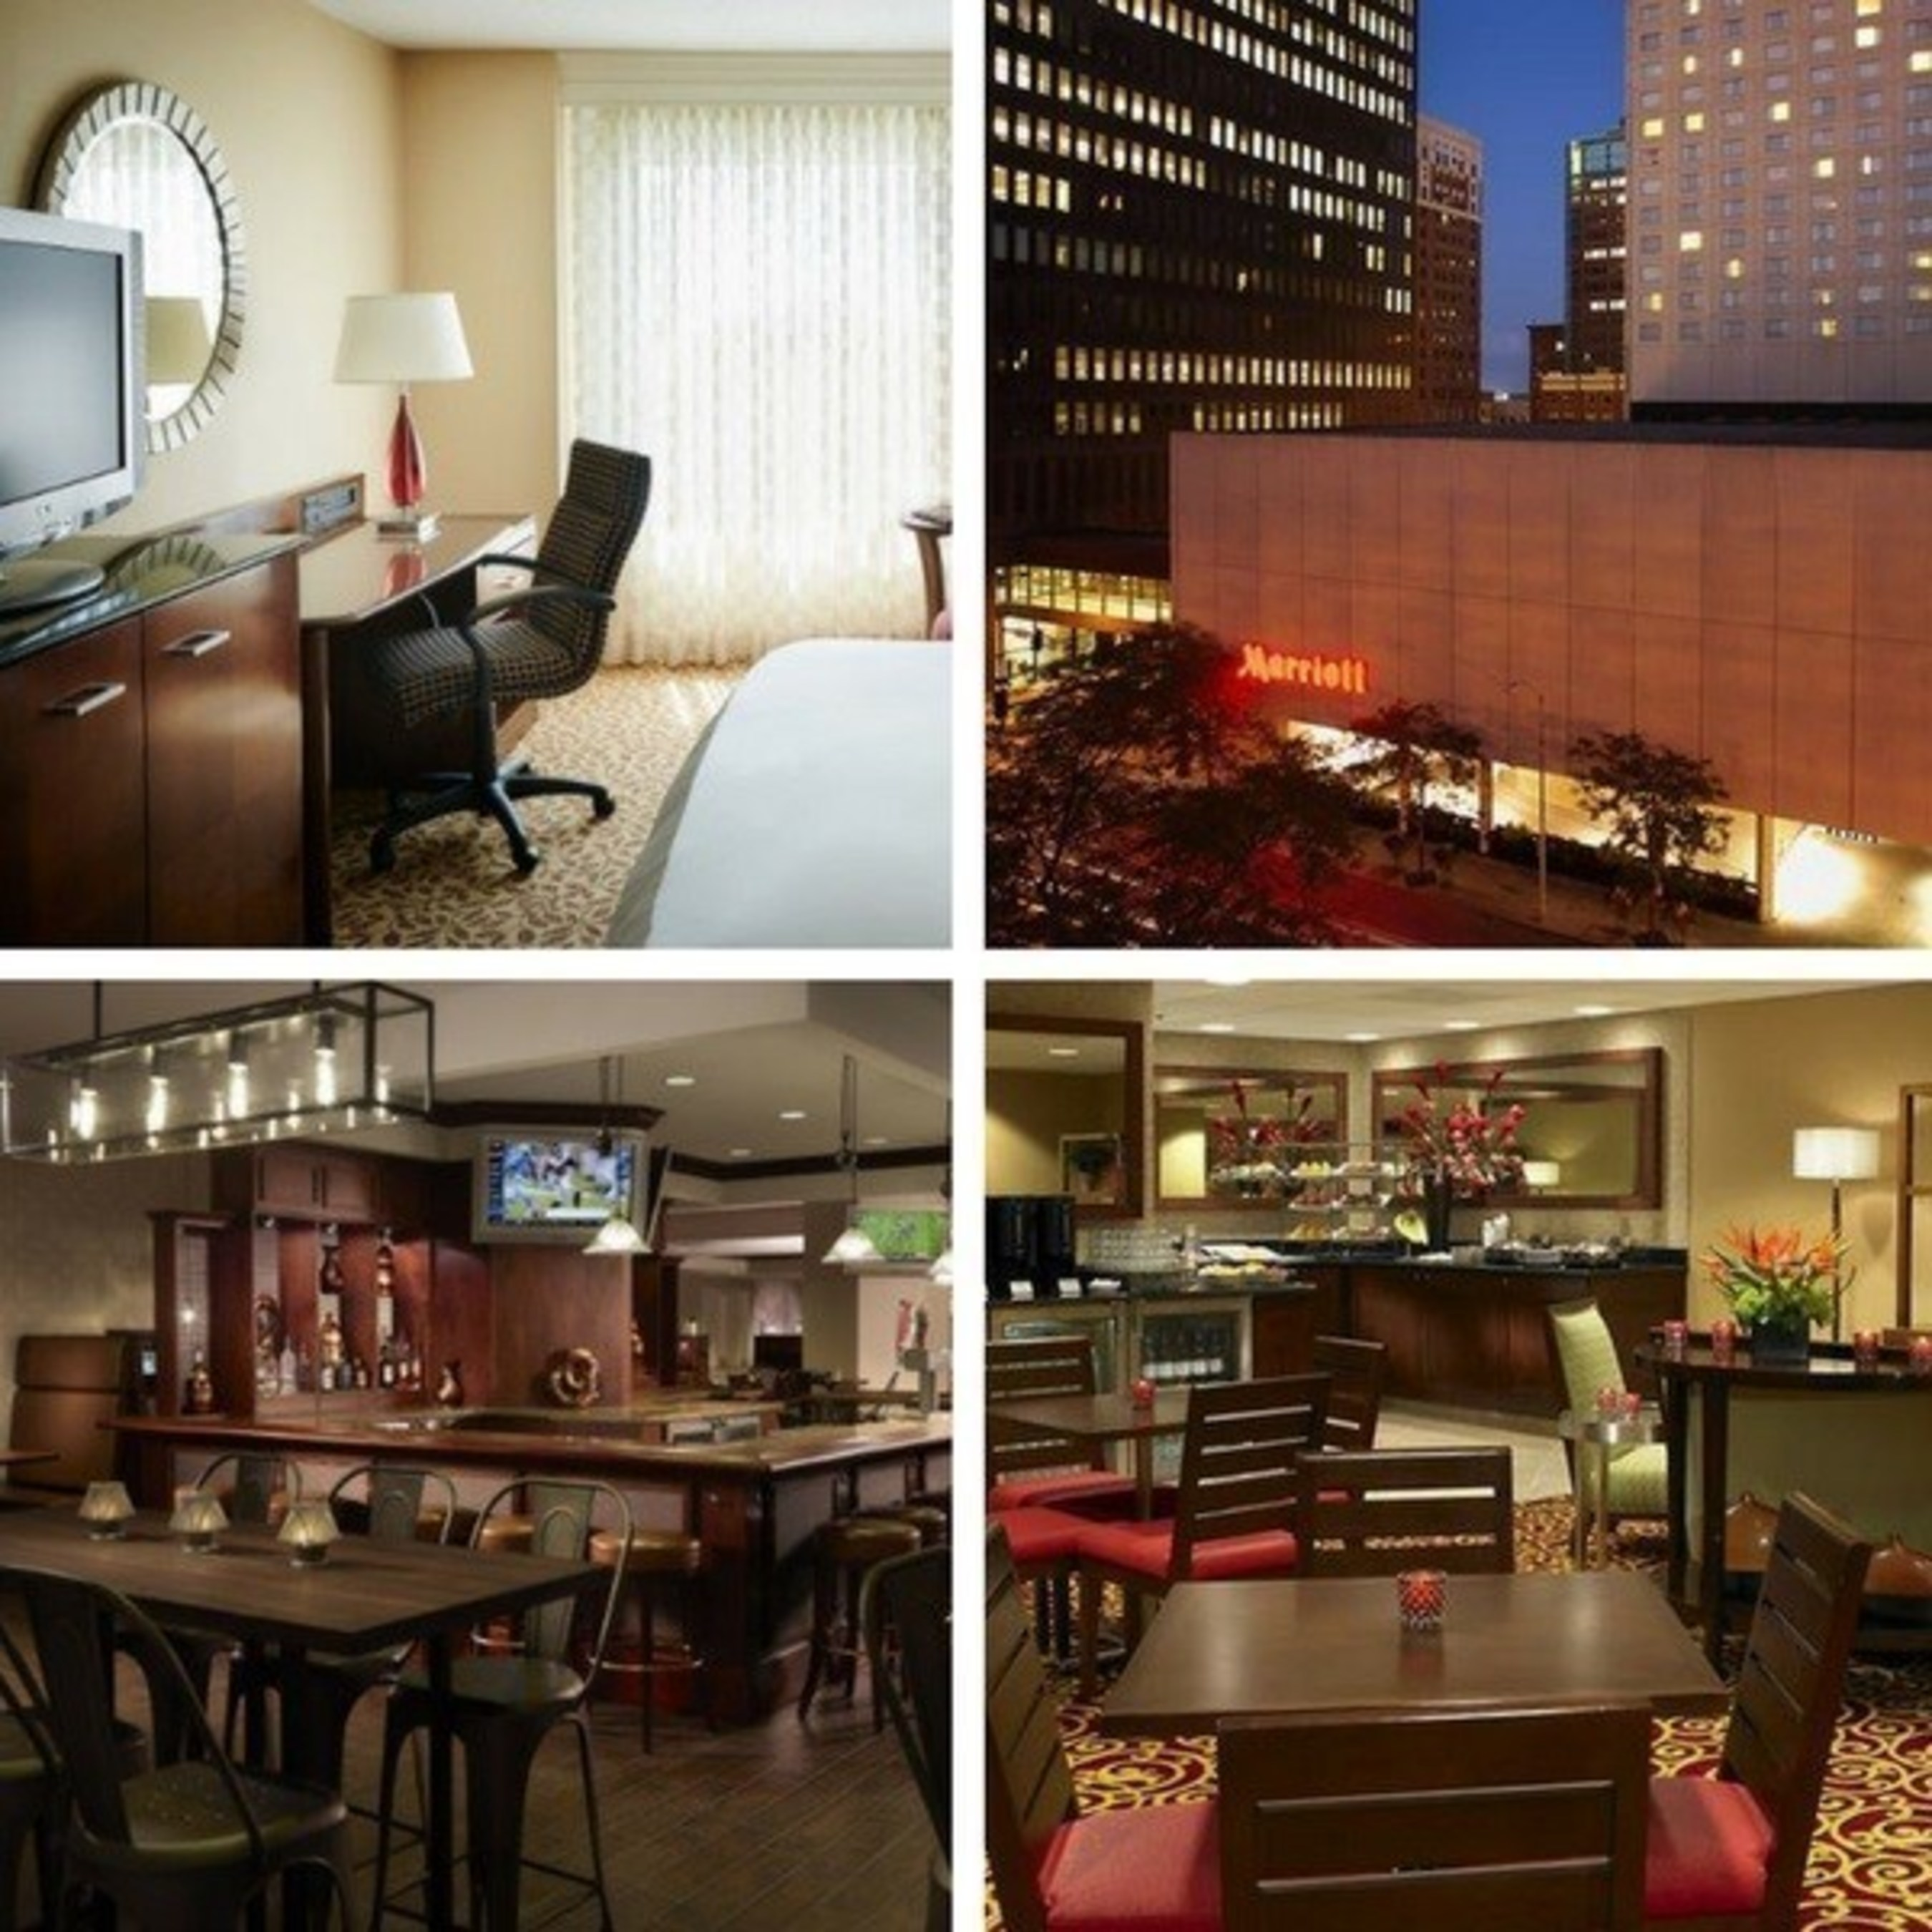 Save up to 15 percent on room rates with a Cyber Weekend sale from Nov. 25 to Nov. 28, 2016 at Des Moines Marriott Downtown. For information, visit www.marriott.com/DSMIA or call 1-515-245-5500.